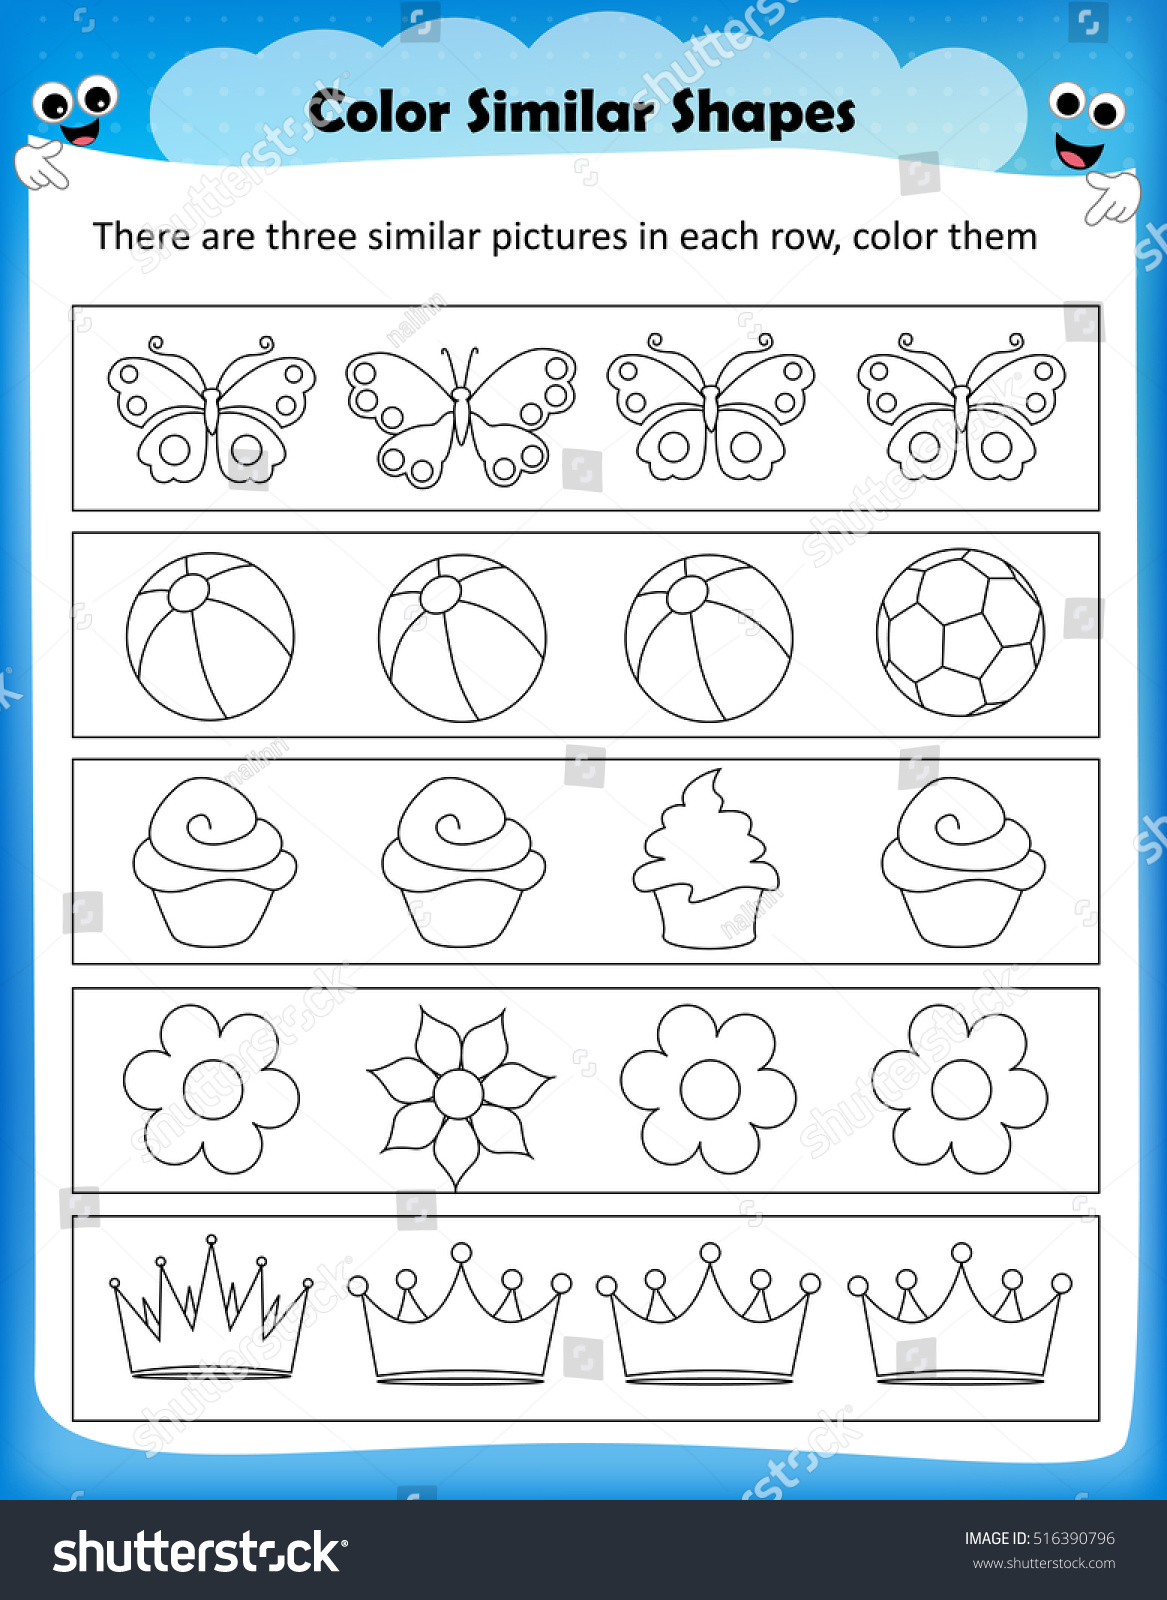 Worksheet Color Similar Shapes Kids Worksheet Stock Vector